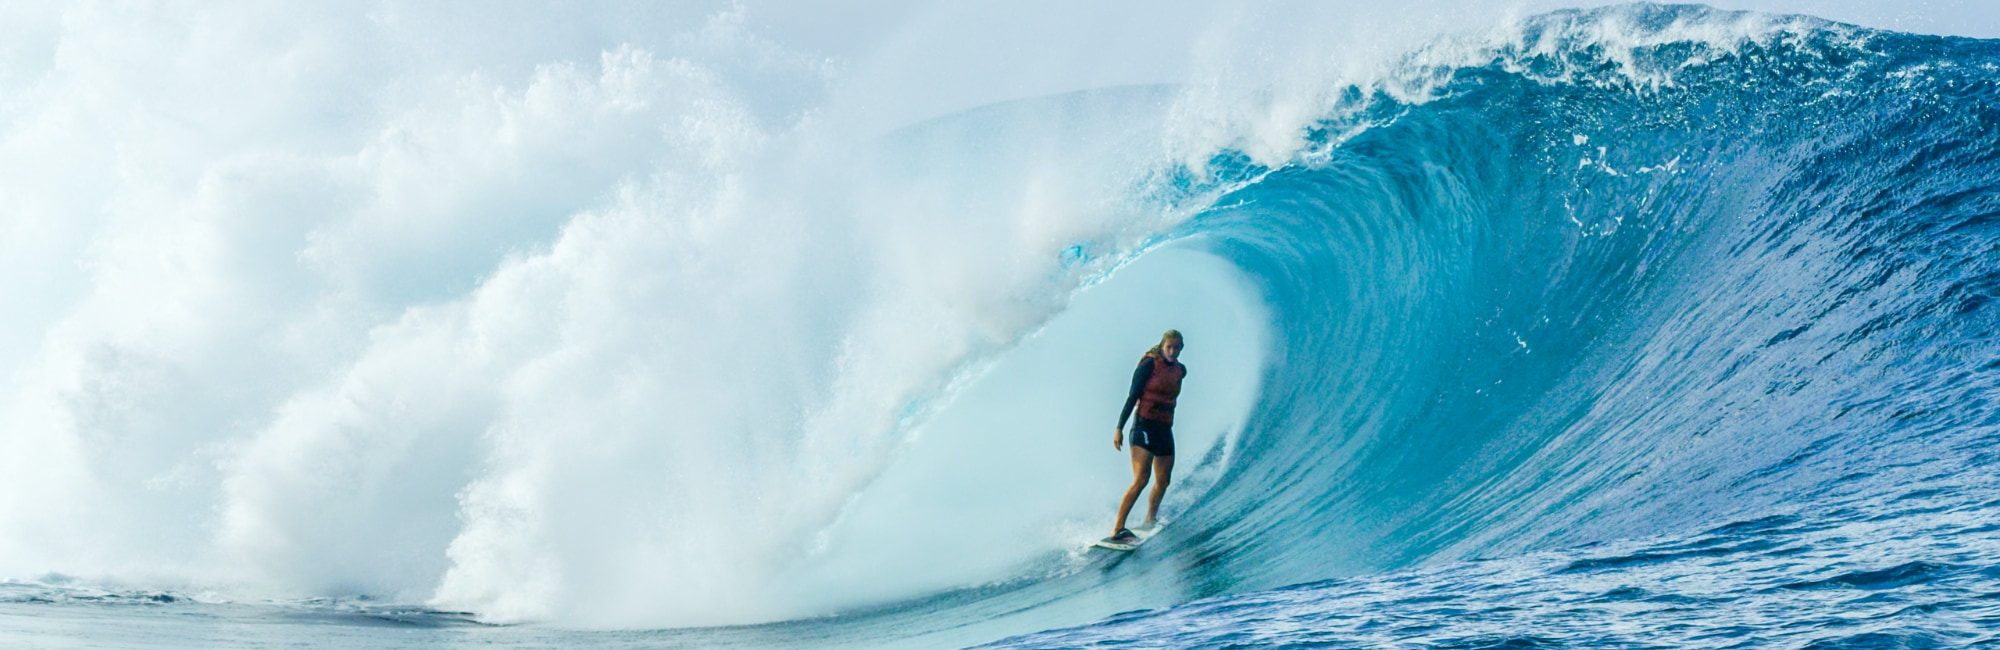 Bethany Hamilton surfing a perfect barrel wave at Teahupoo